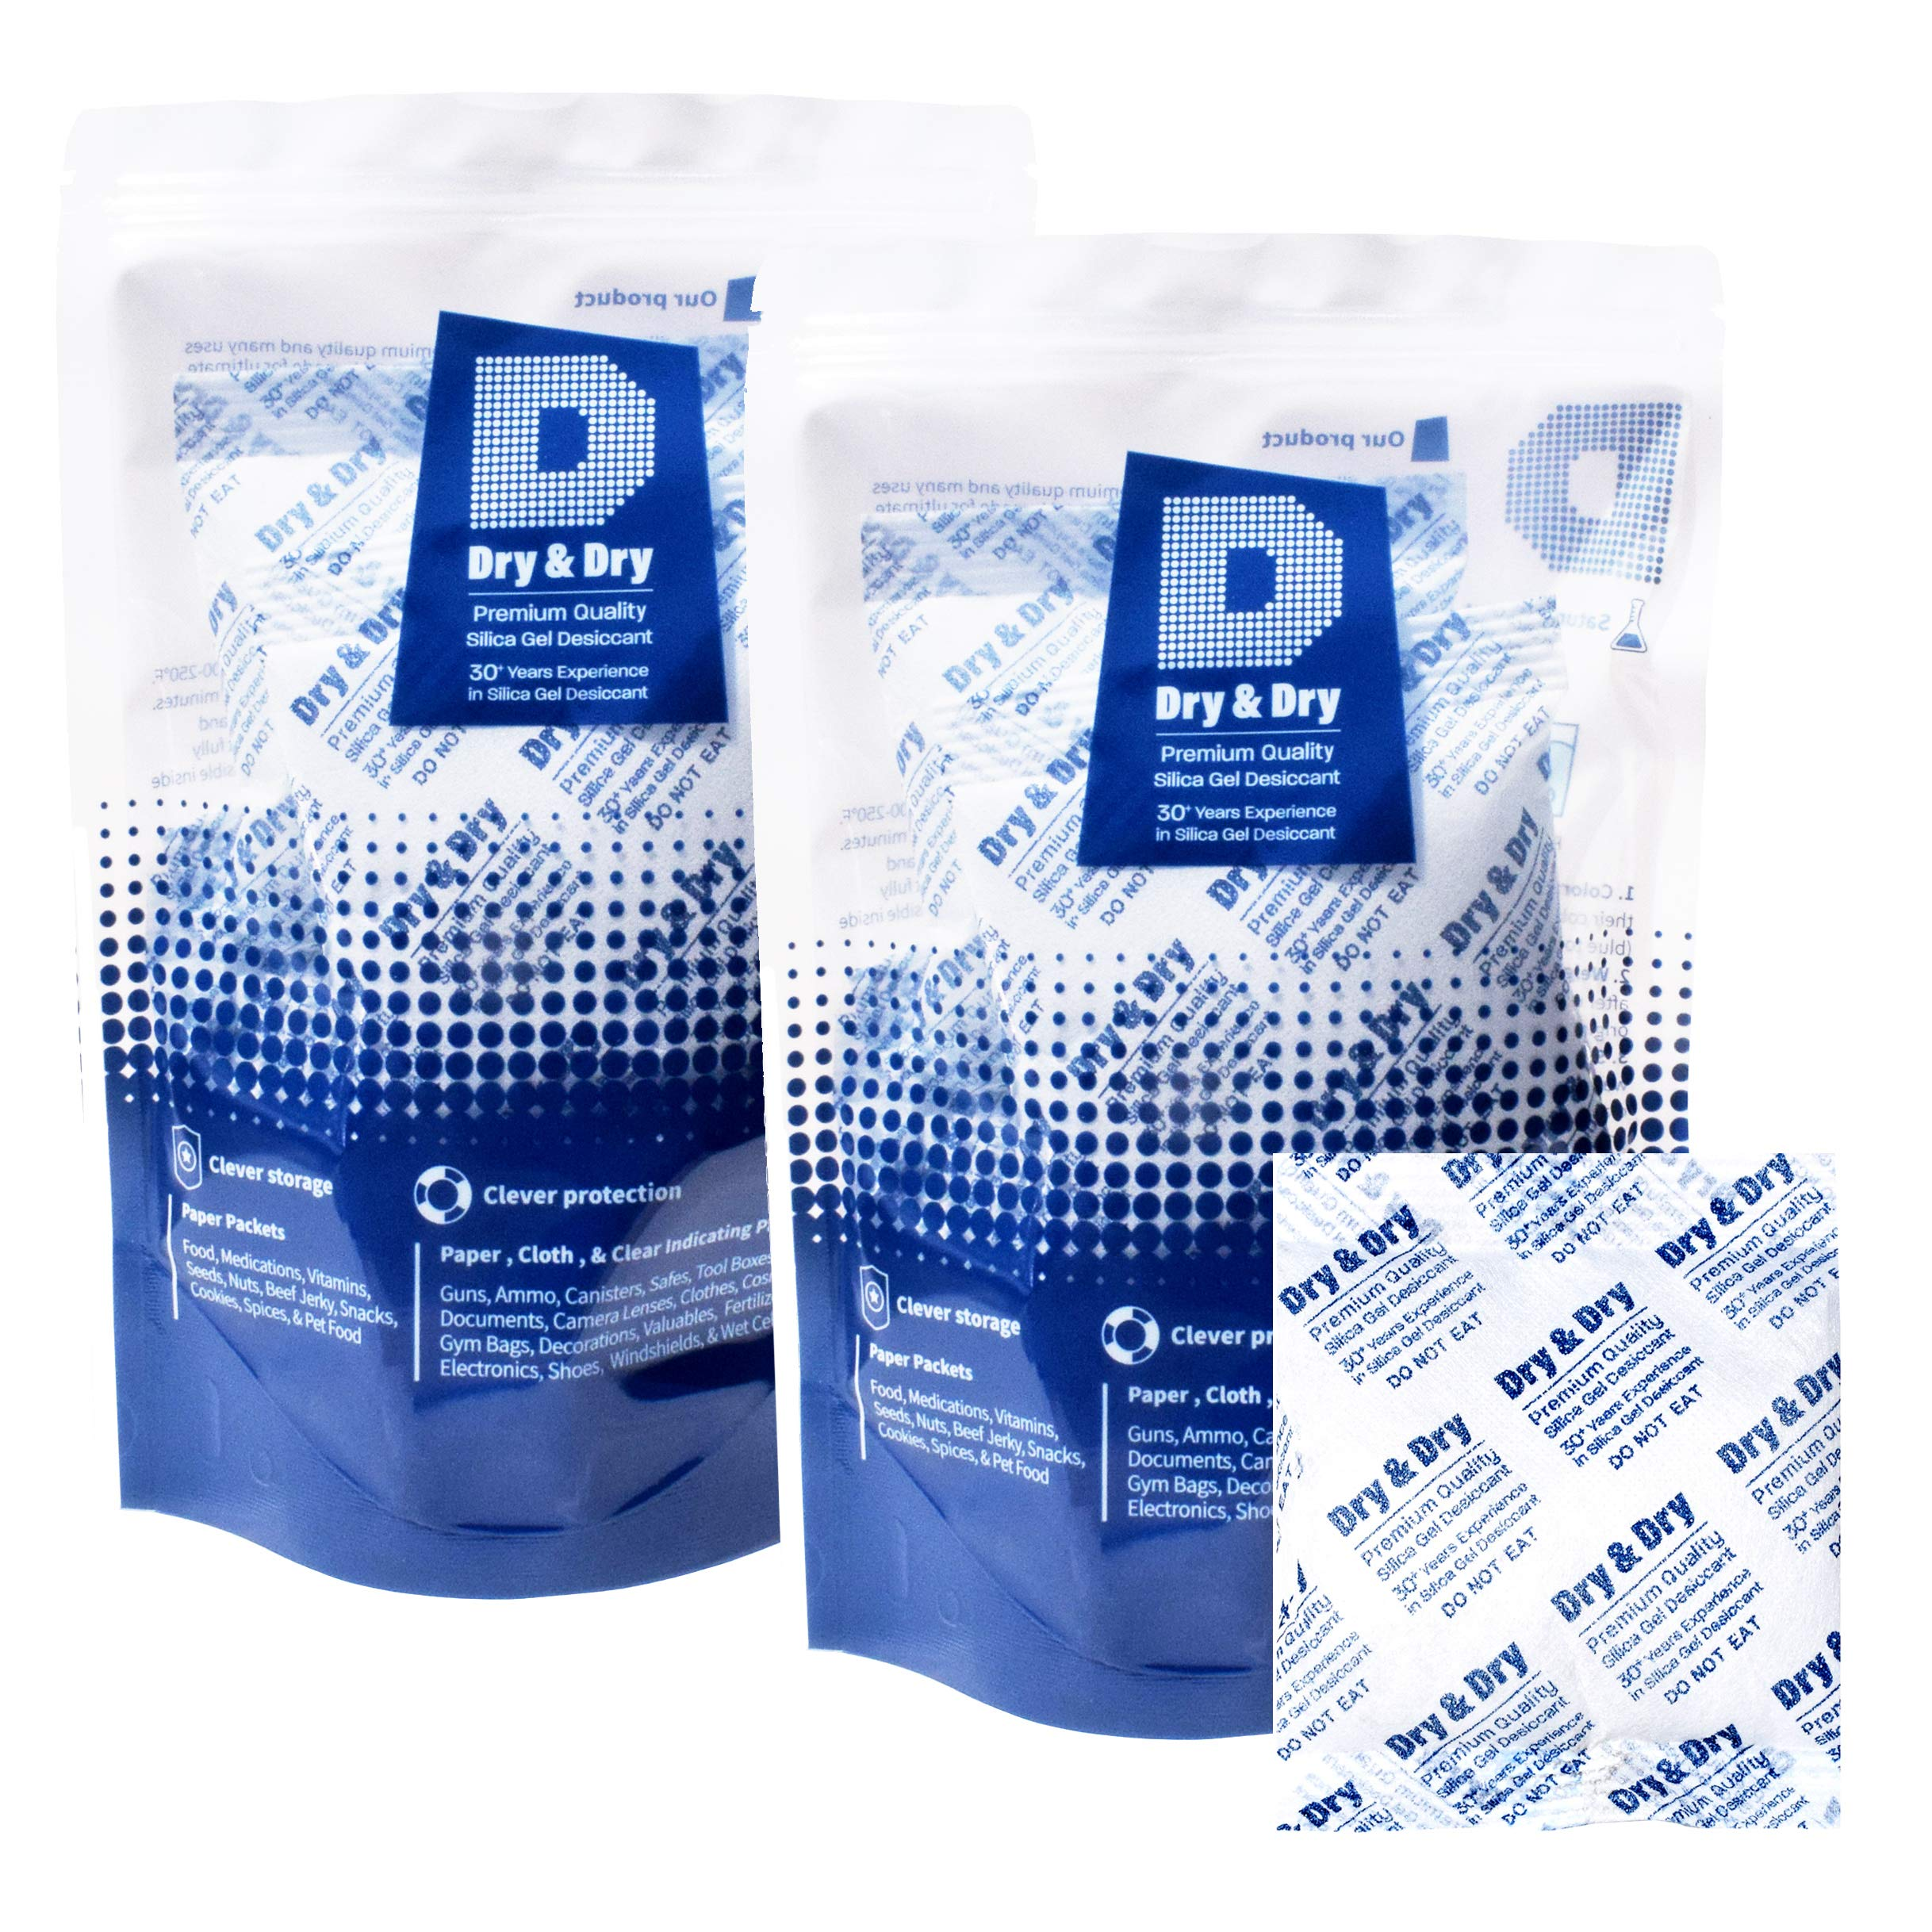 Dry & Dry 100 Gram [10 Packets] Premium Pure & Safe Silica Gel Desiccant Packeks Dehumidifier - Rechargeable Fabric Silica Packets for Moisture